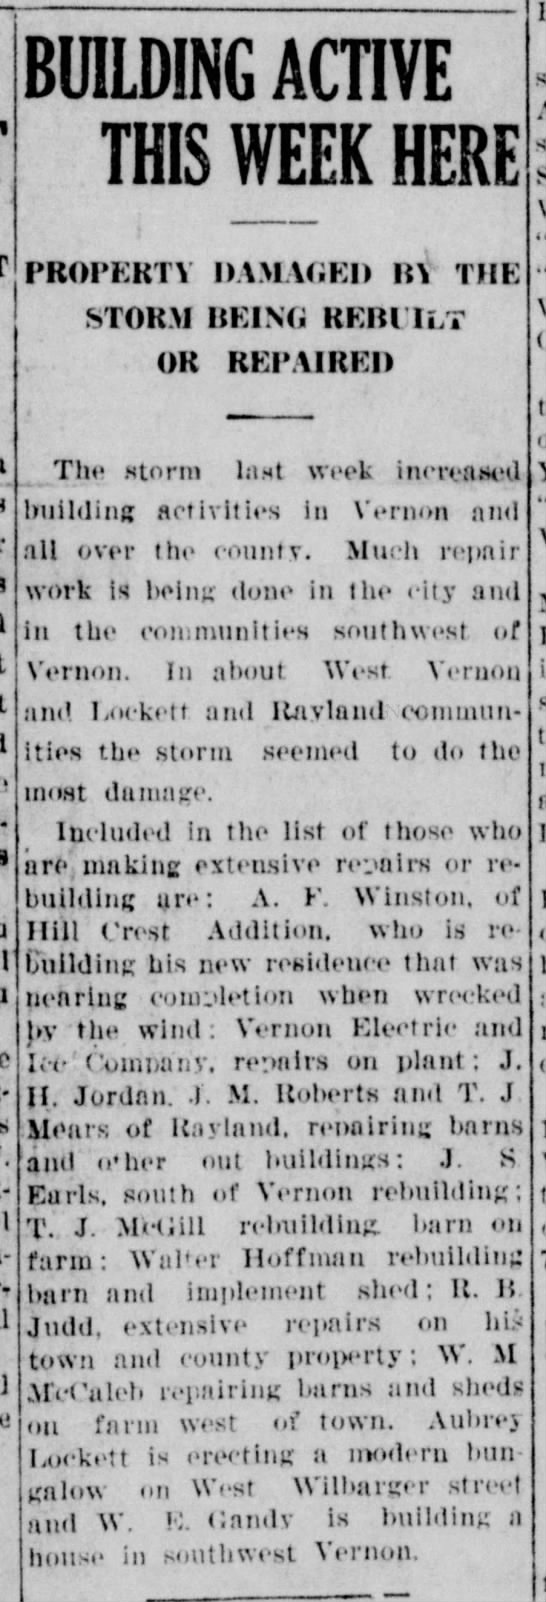 The Vernon Record, TX, 4 Apr 1924 p1 c3 - BUILDING ACTIVE THIS WEEK HERE PROPERTY DAMAGED...